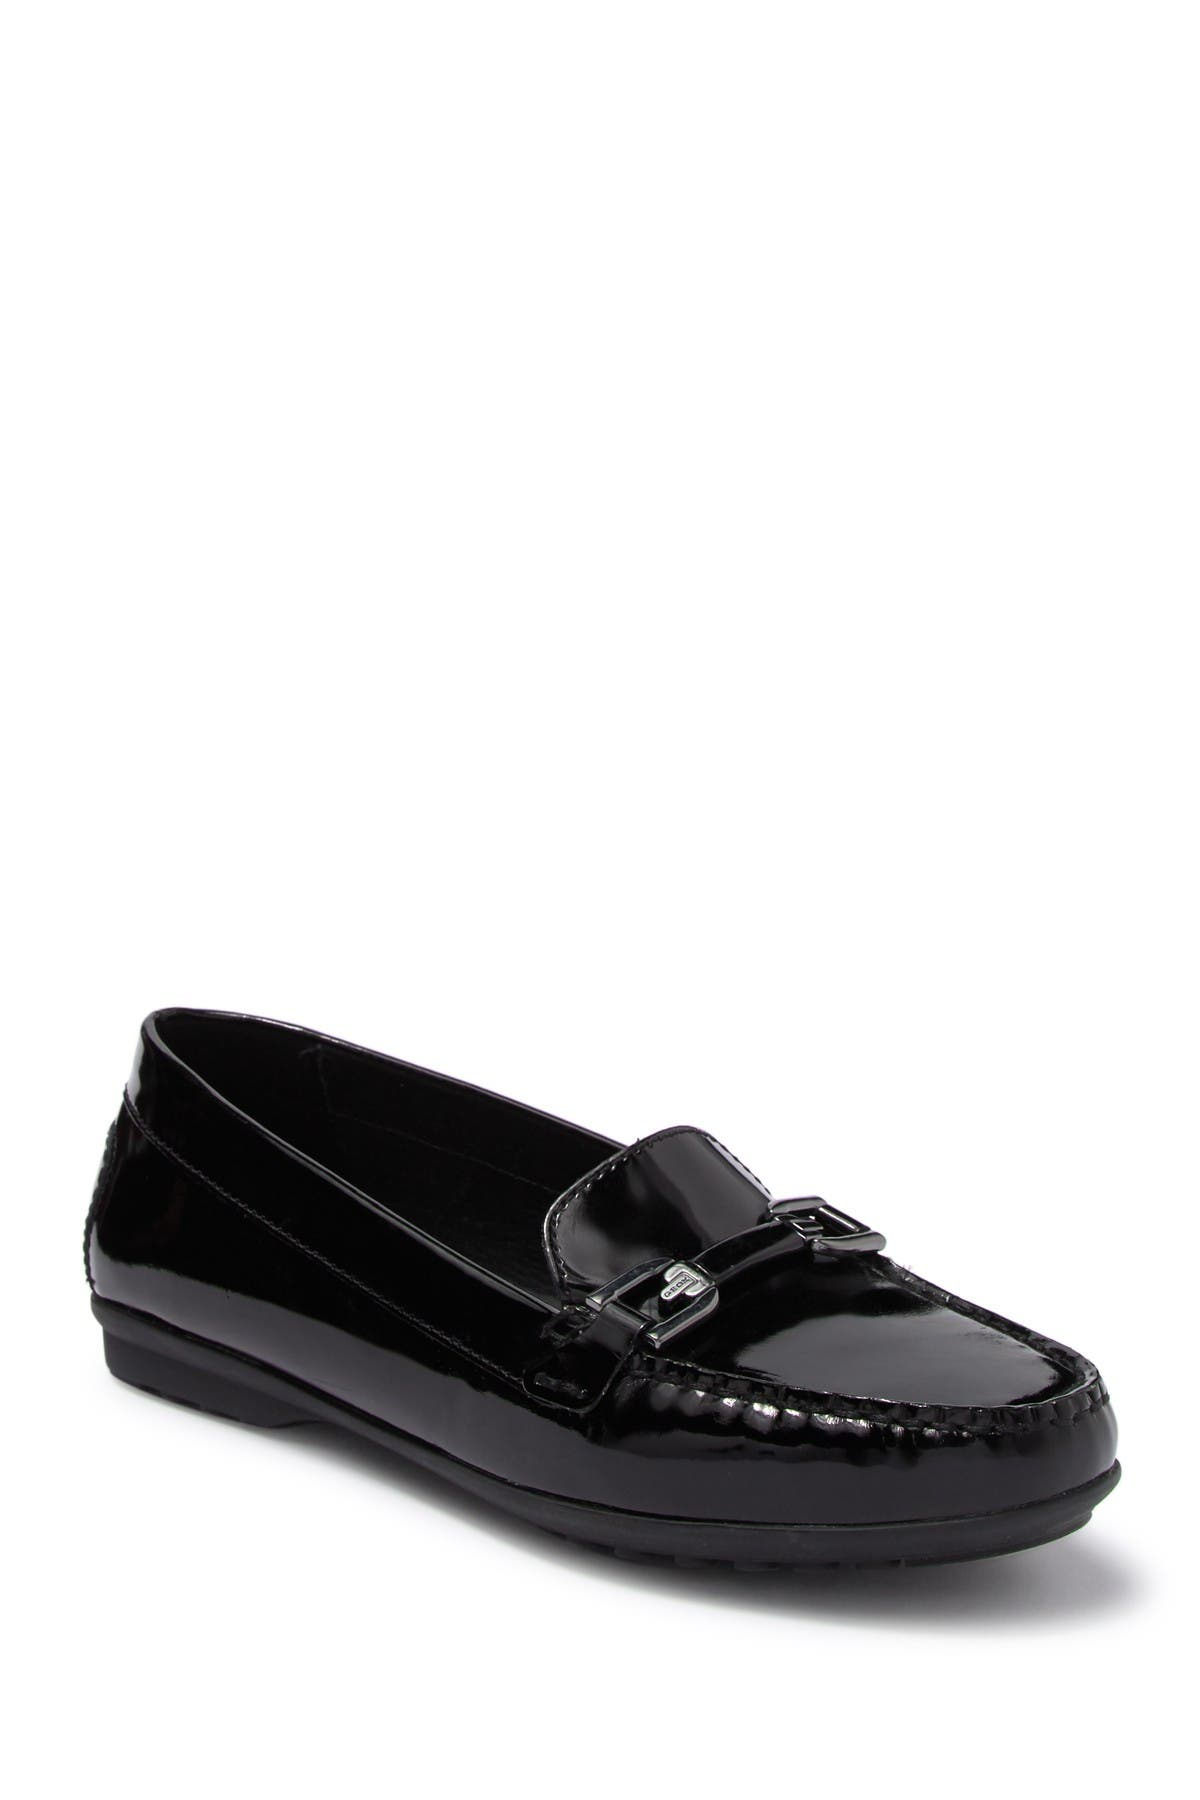 Image of GEOX Elidia Patent Moc Loafer